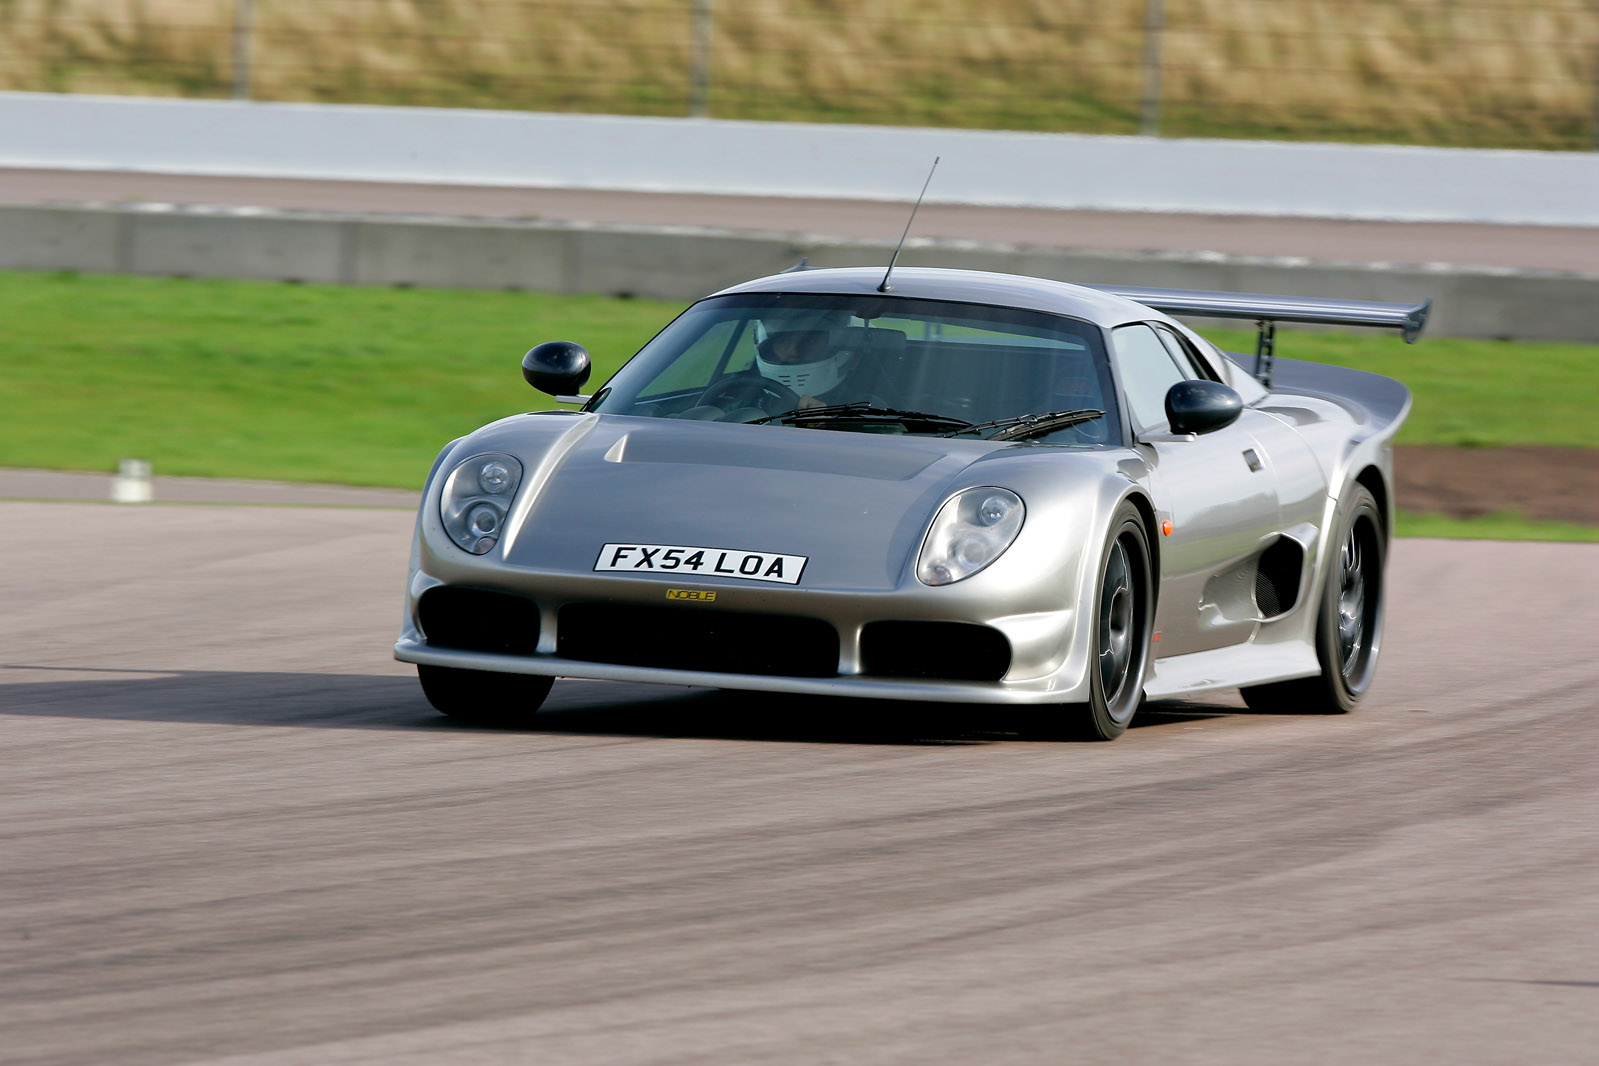 Used car buying guide: Noble M12 - NEWSCABAL